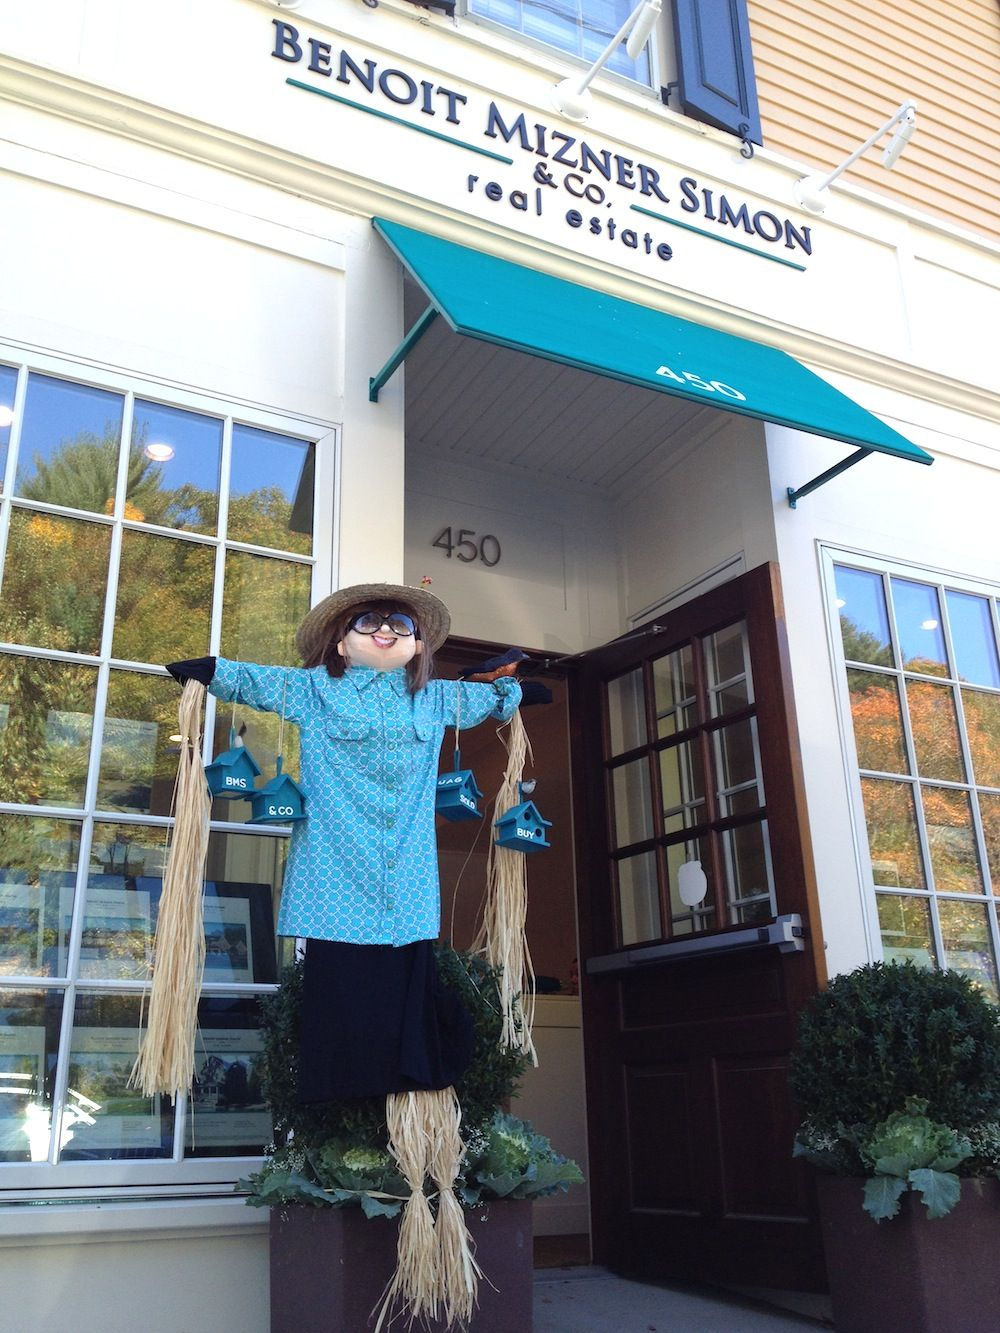 Our Weston office is ready for the WCCA (Weston Community Children's Association) festivities all month long & Trick or Treating on the Town Green October 25th. Happy October! #benoitmiznersimon #fallinweston